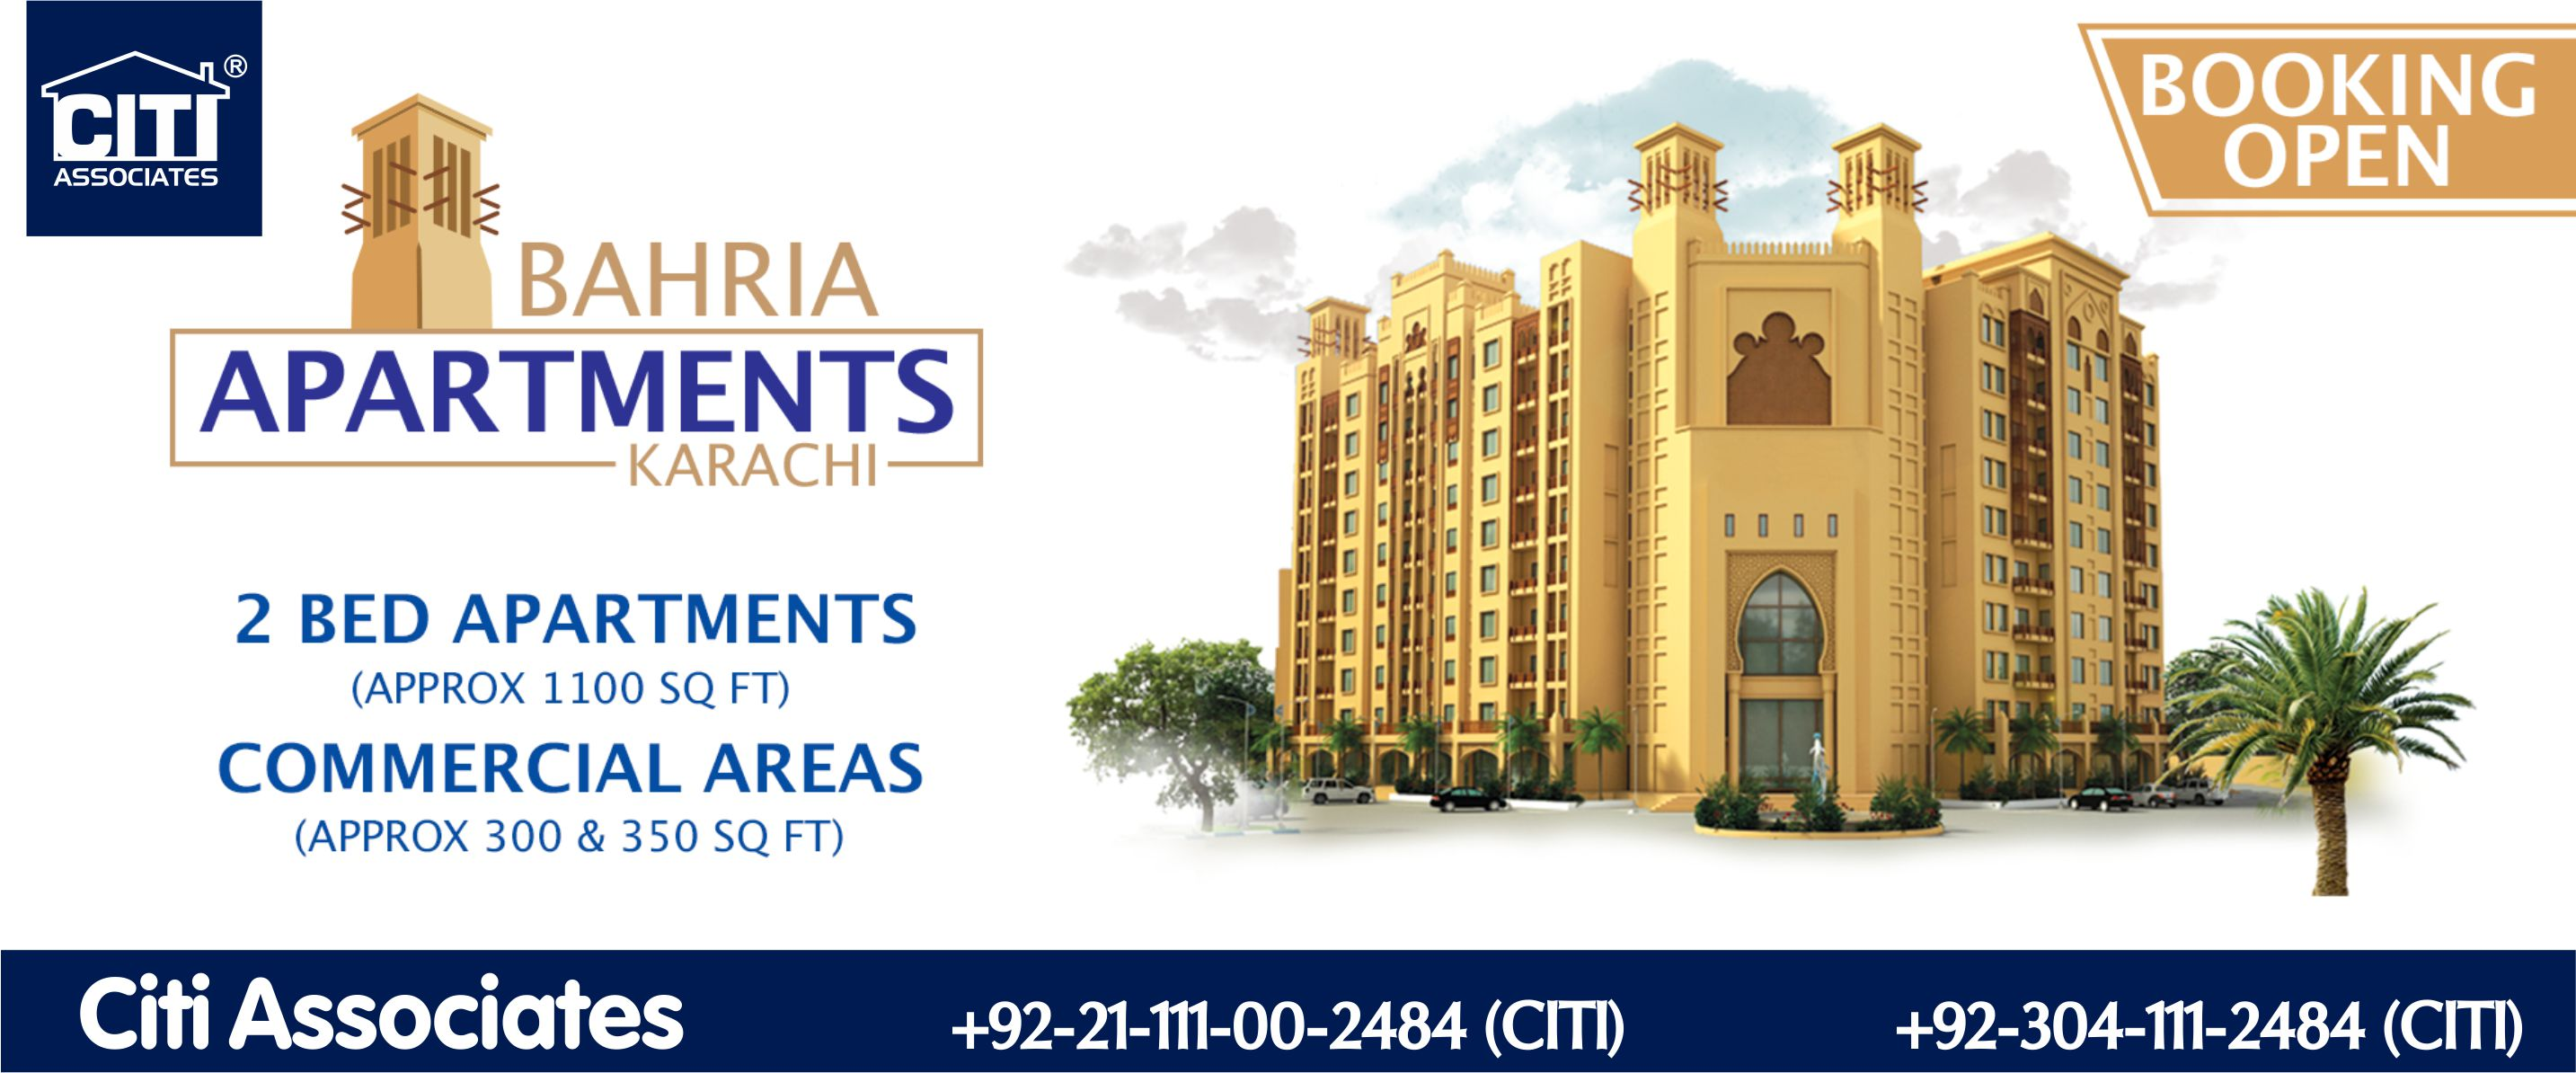 Booking's Open | Bahria Apartments Karachi